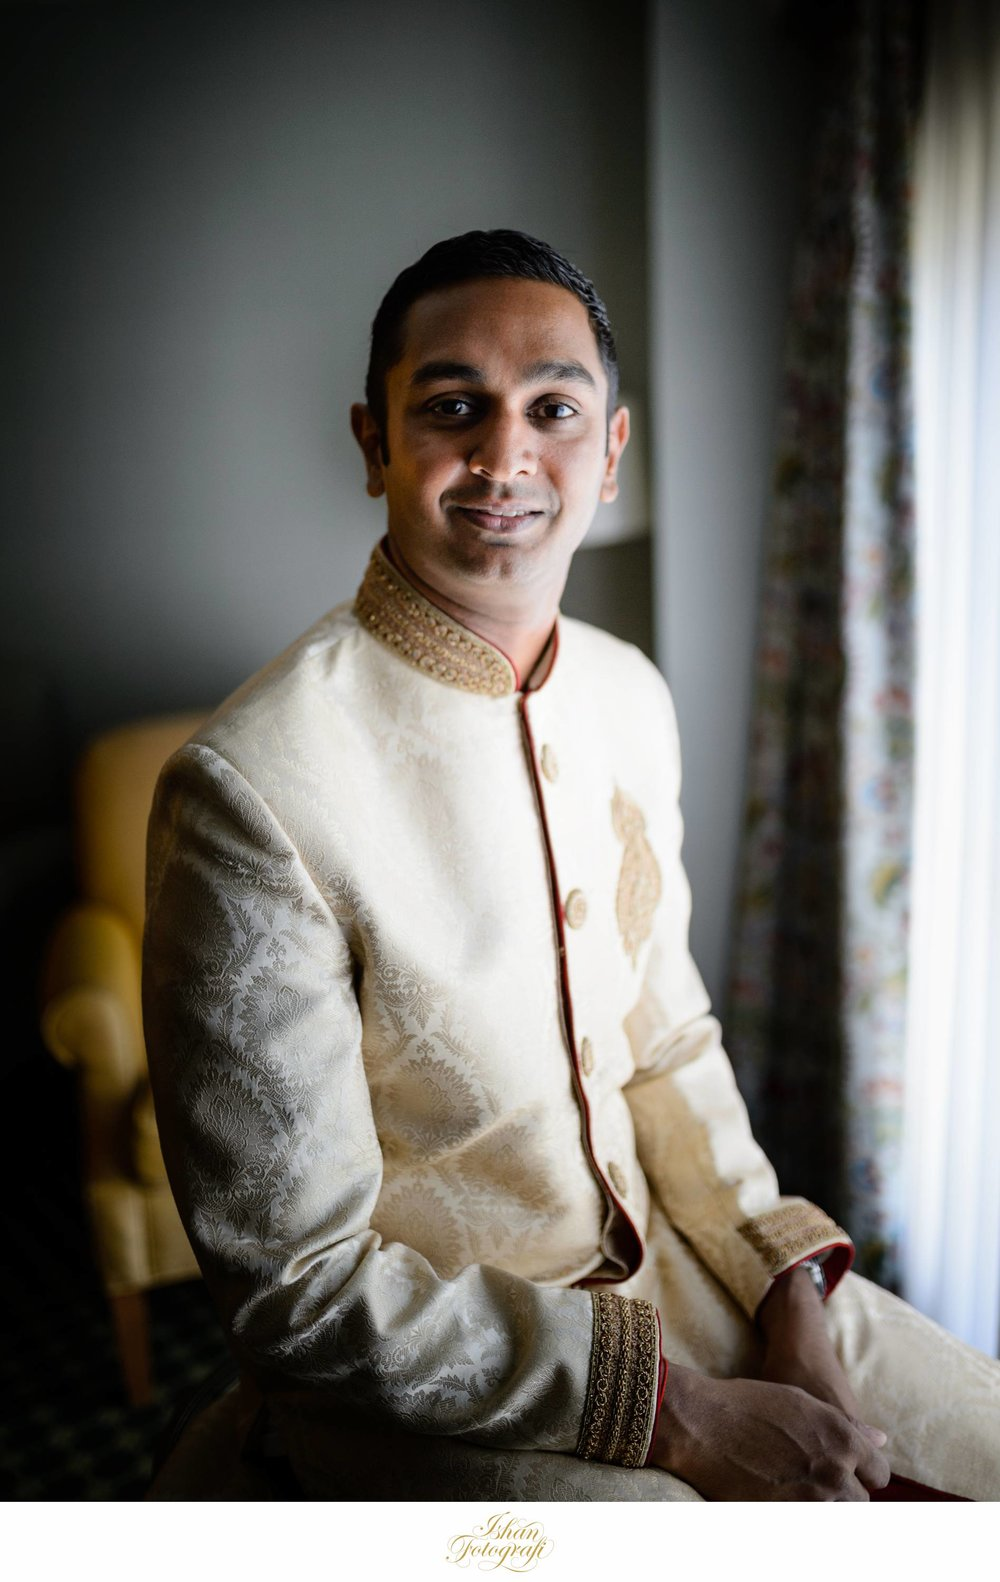 Our groom sported a classic beige sherwani with red accents. This compliment the bridal lengha very well.